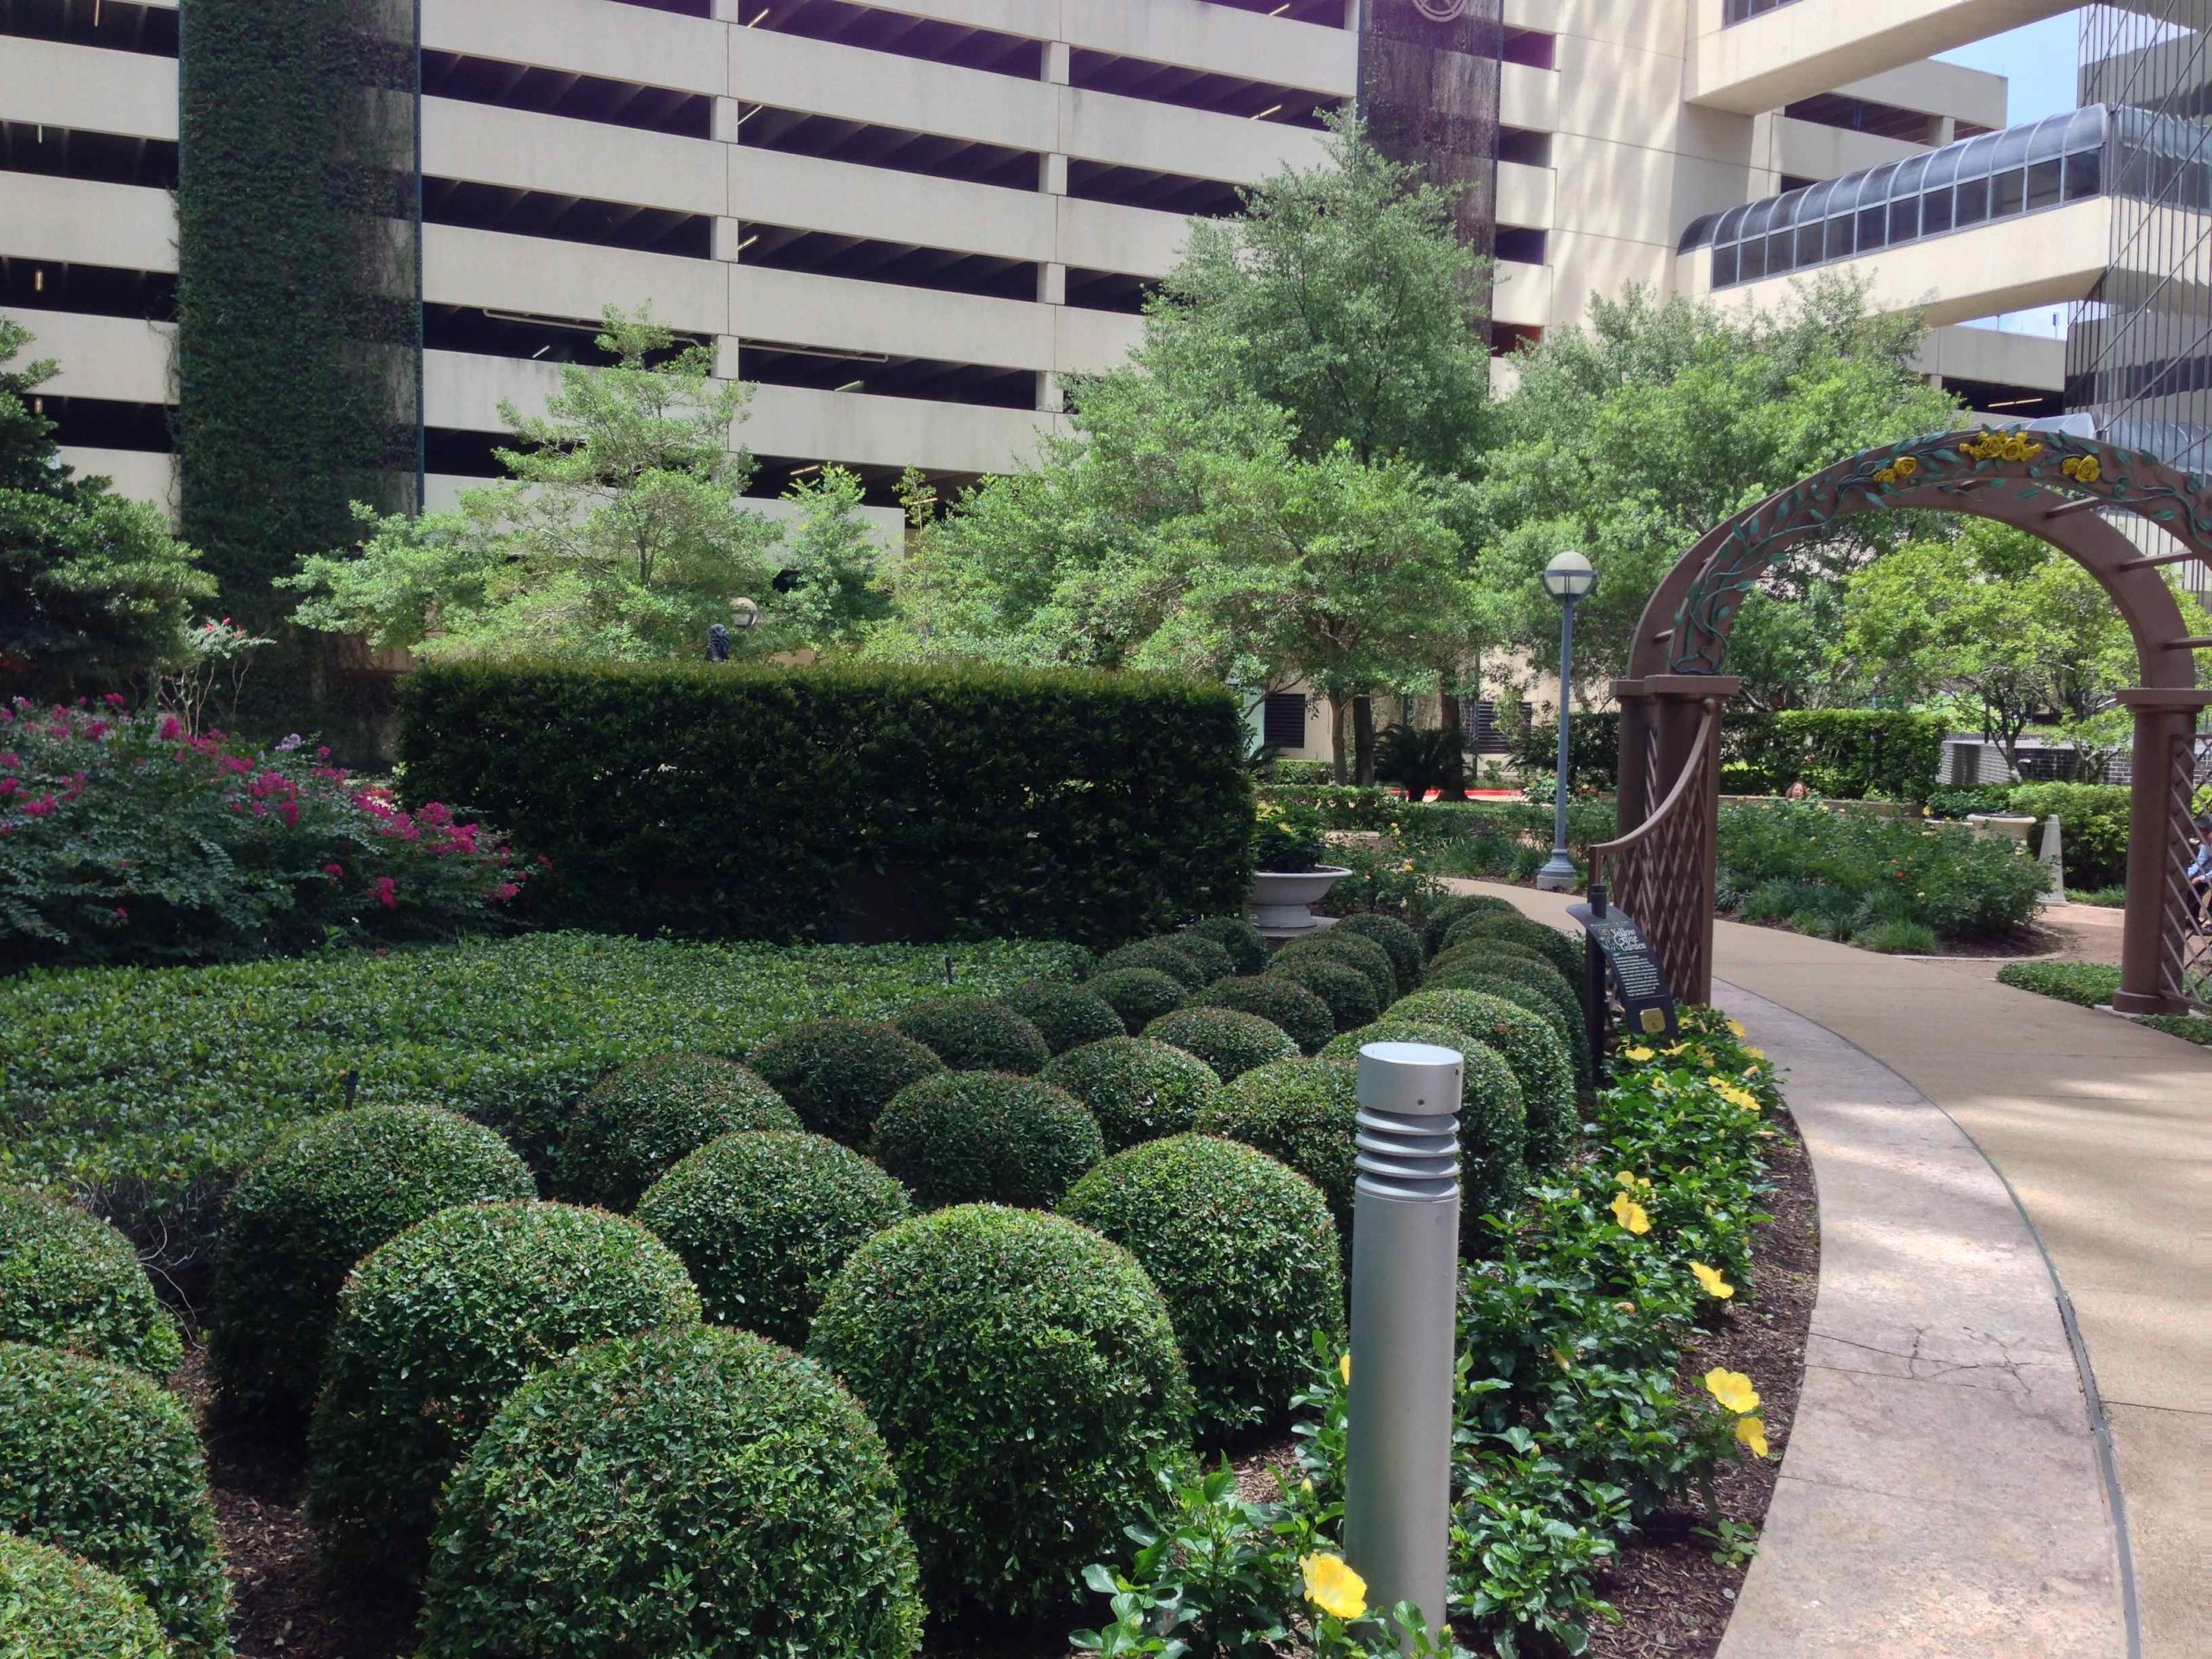 Commercial Properties Benefit From Quality Landscaping